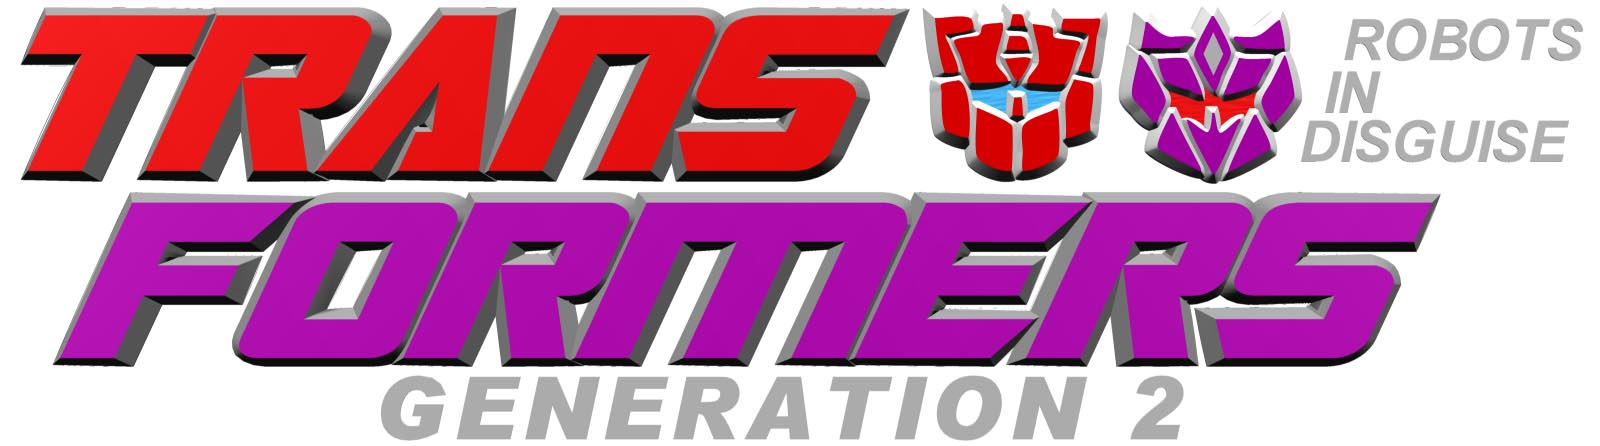 Generation 2 Transformers